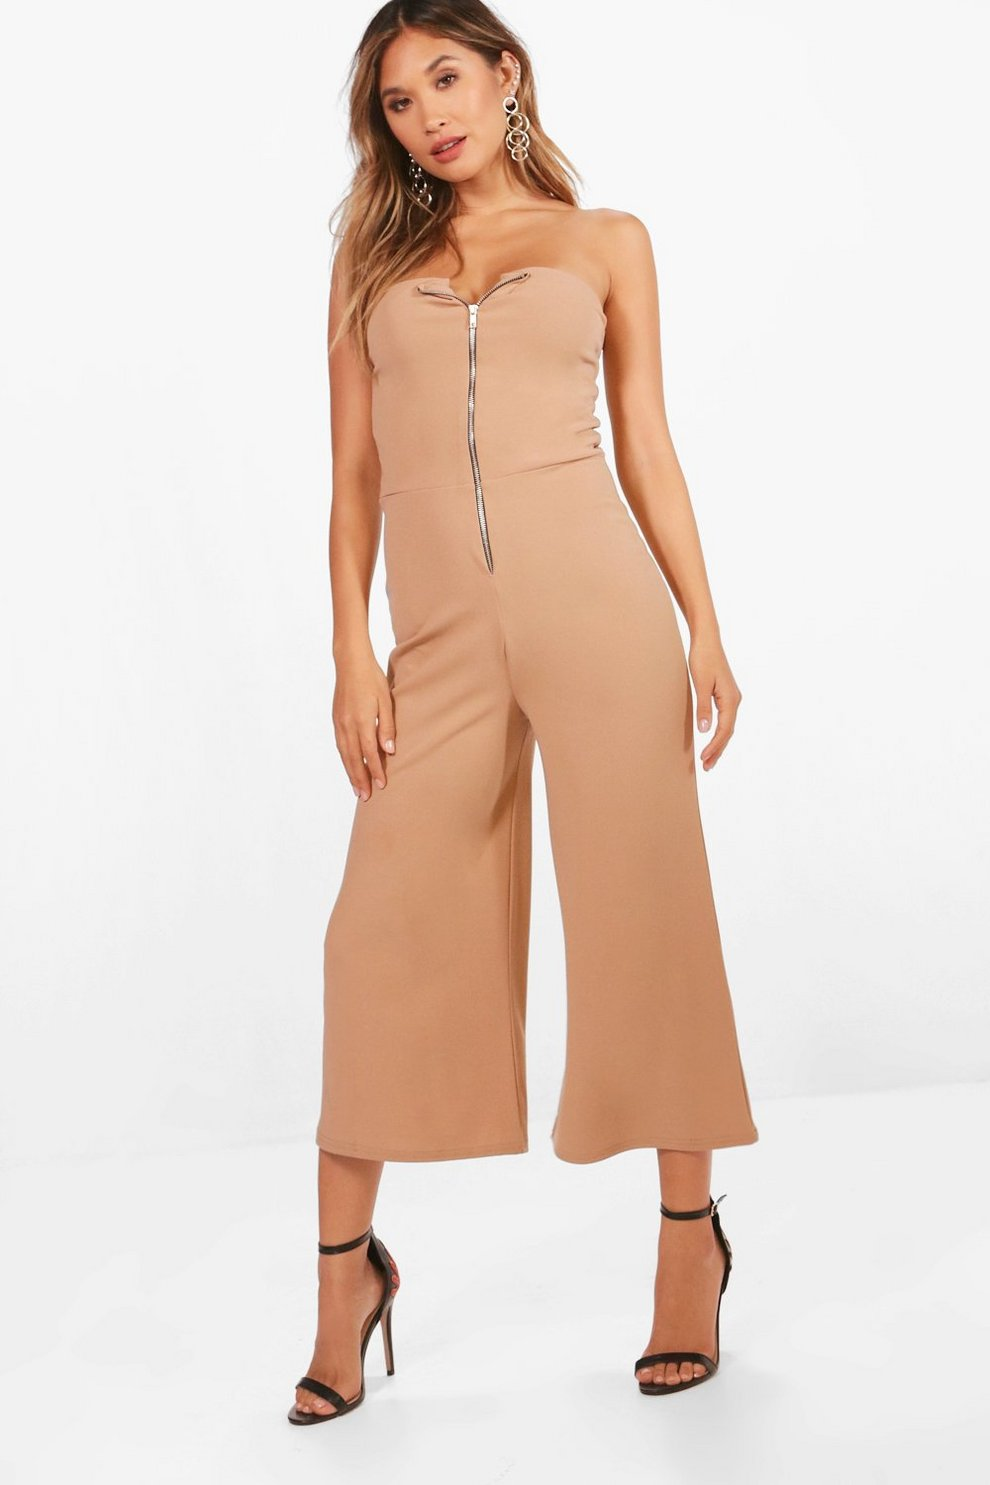 Outlet Order Boohoo Bandeau Culotte Jumpsuit Free Shipping 100% Guaranteed Best Wholesale Sale Online For Cheap Sale Online With Paypal For Sale yD5T4HS6B